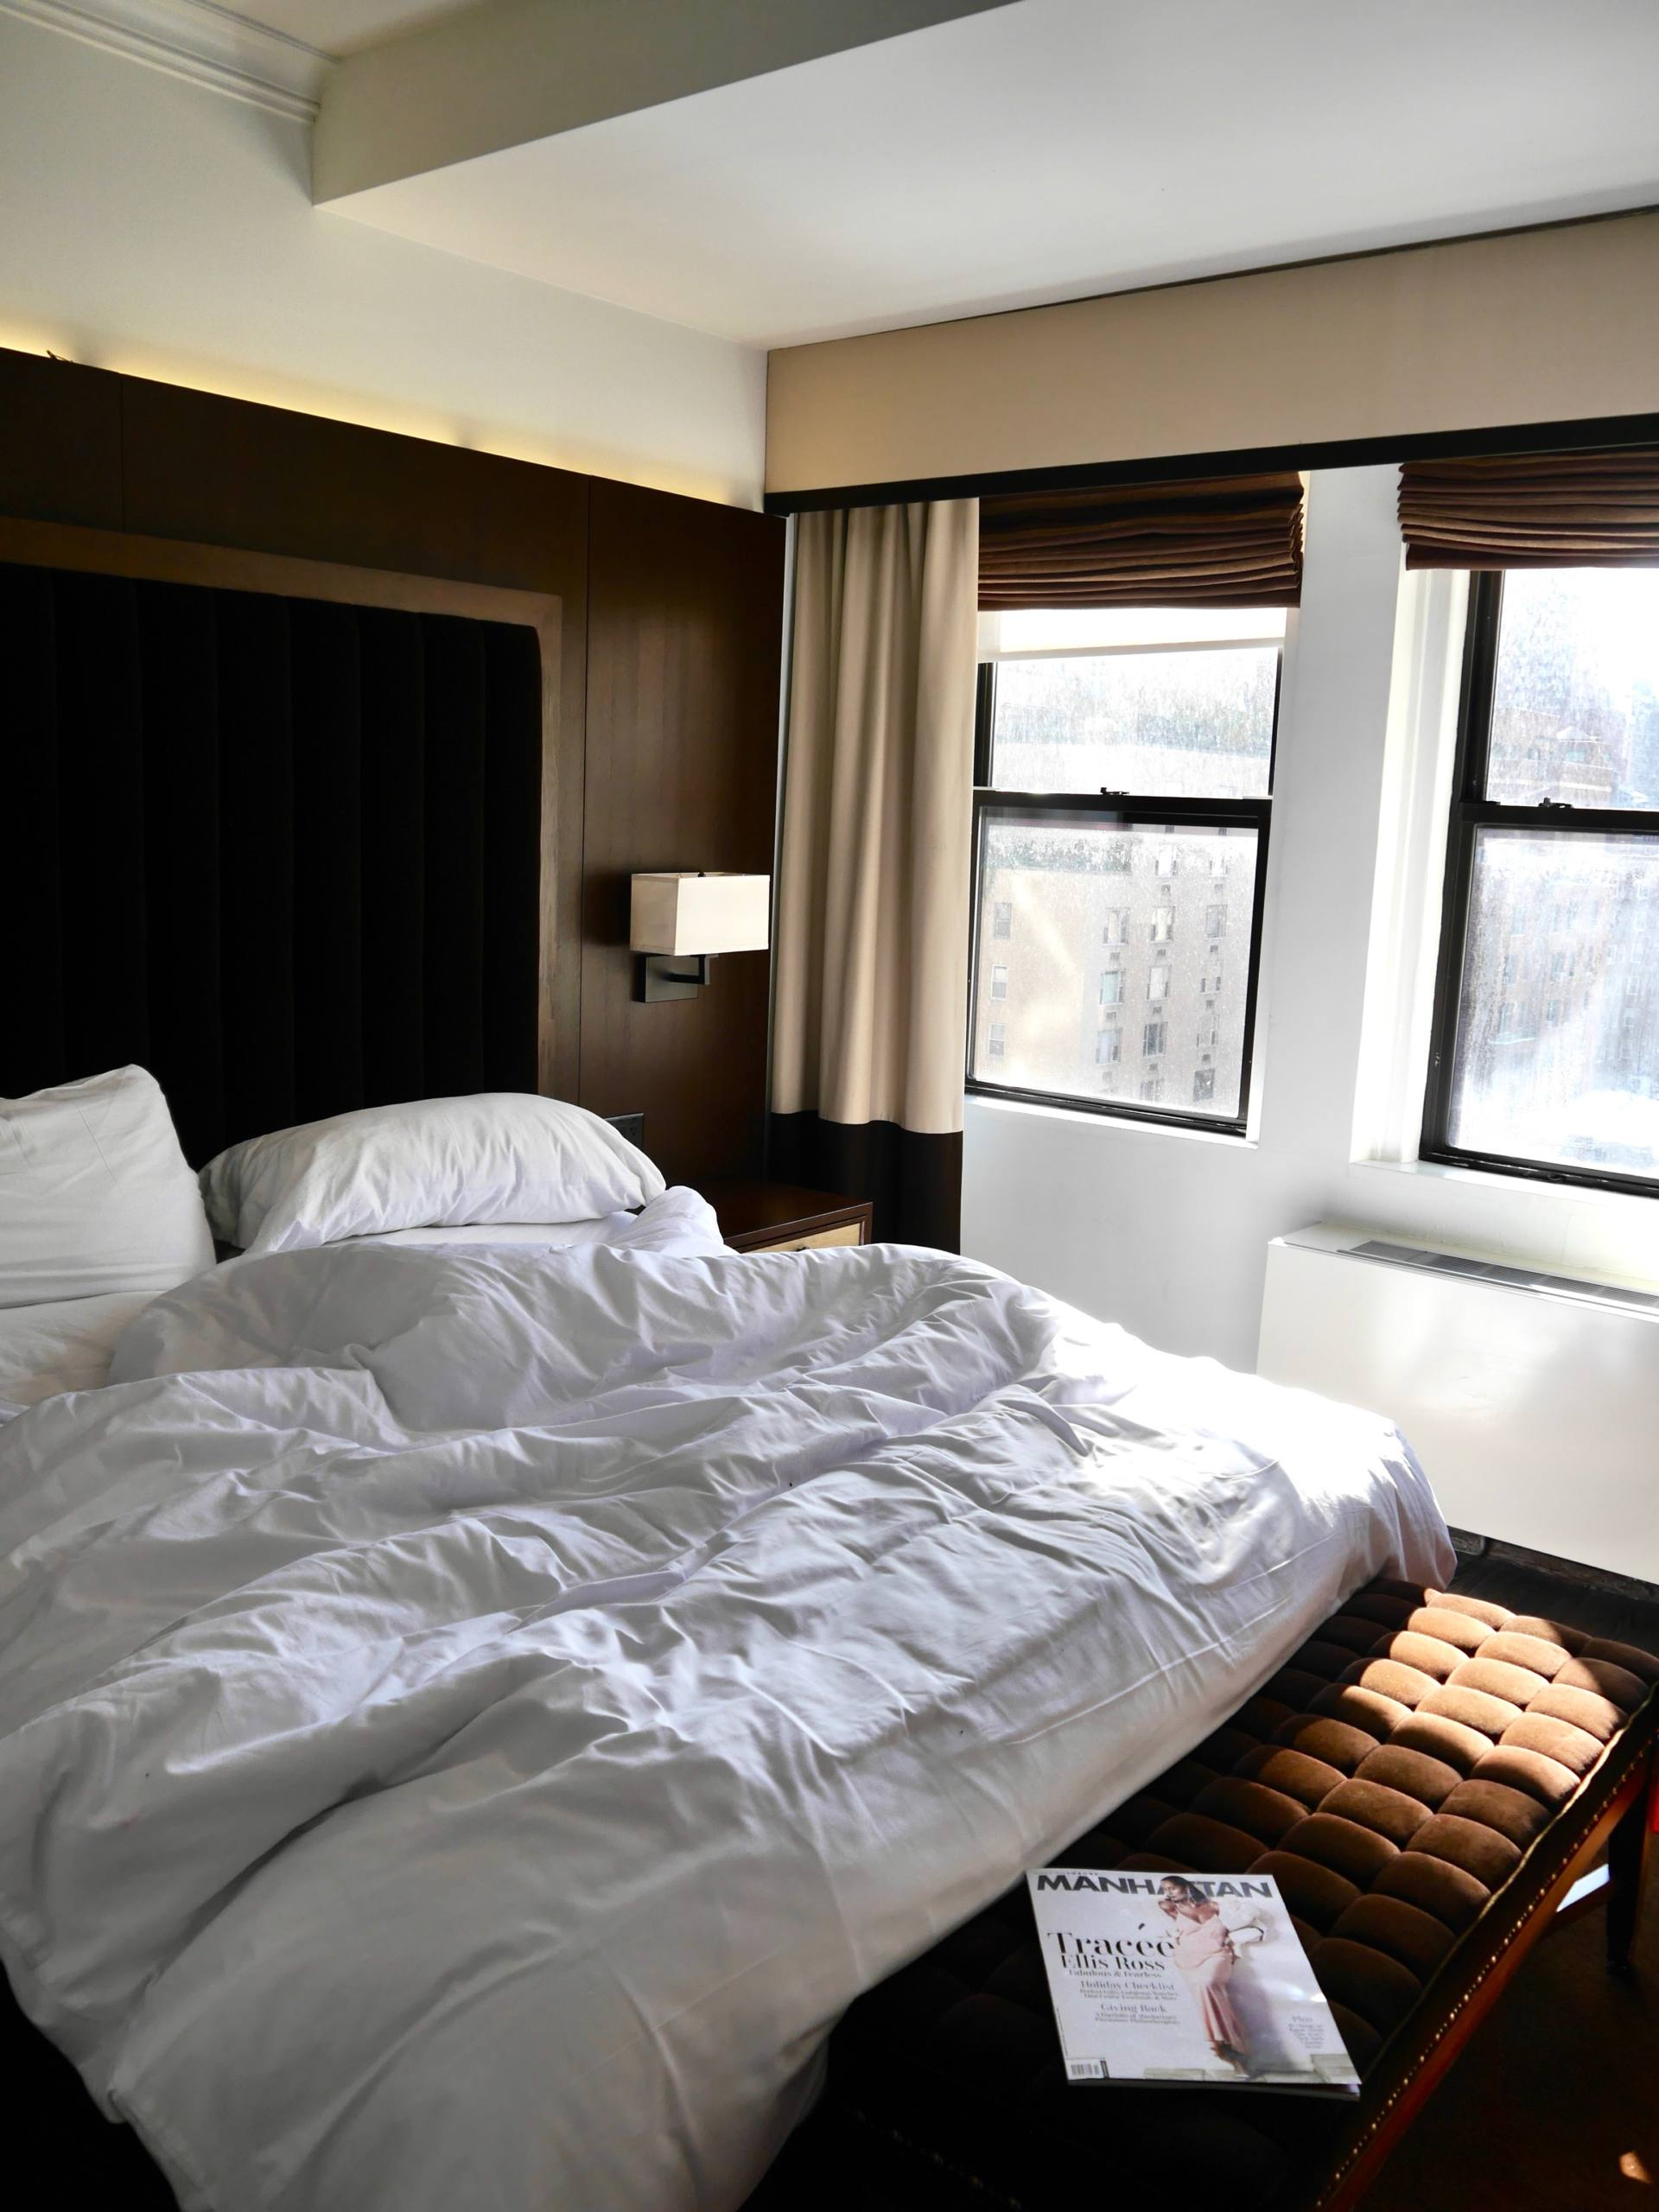 New York Hotel Hotels Size In Cm